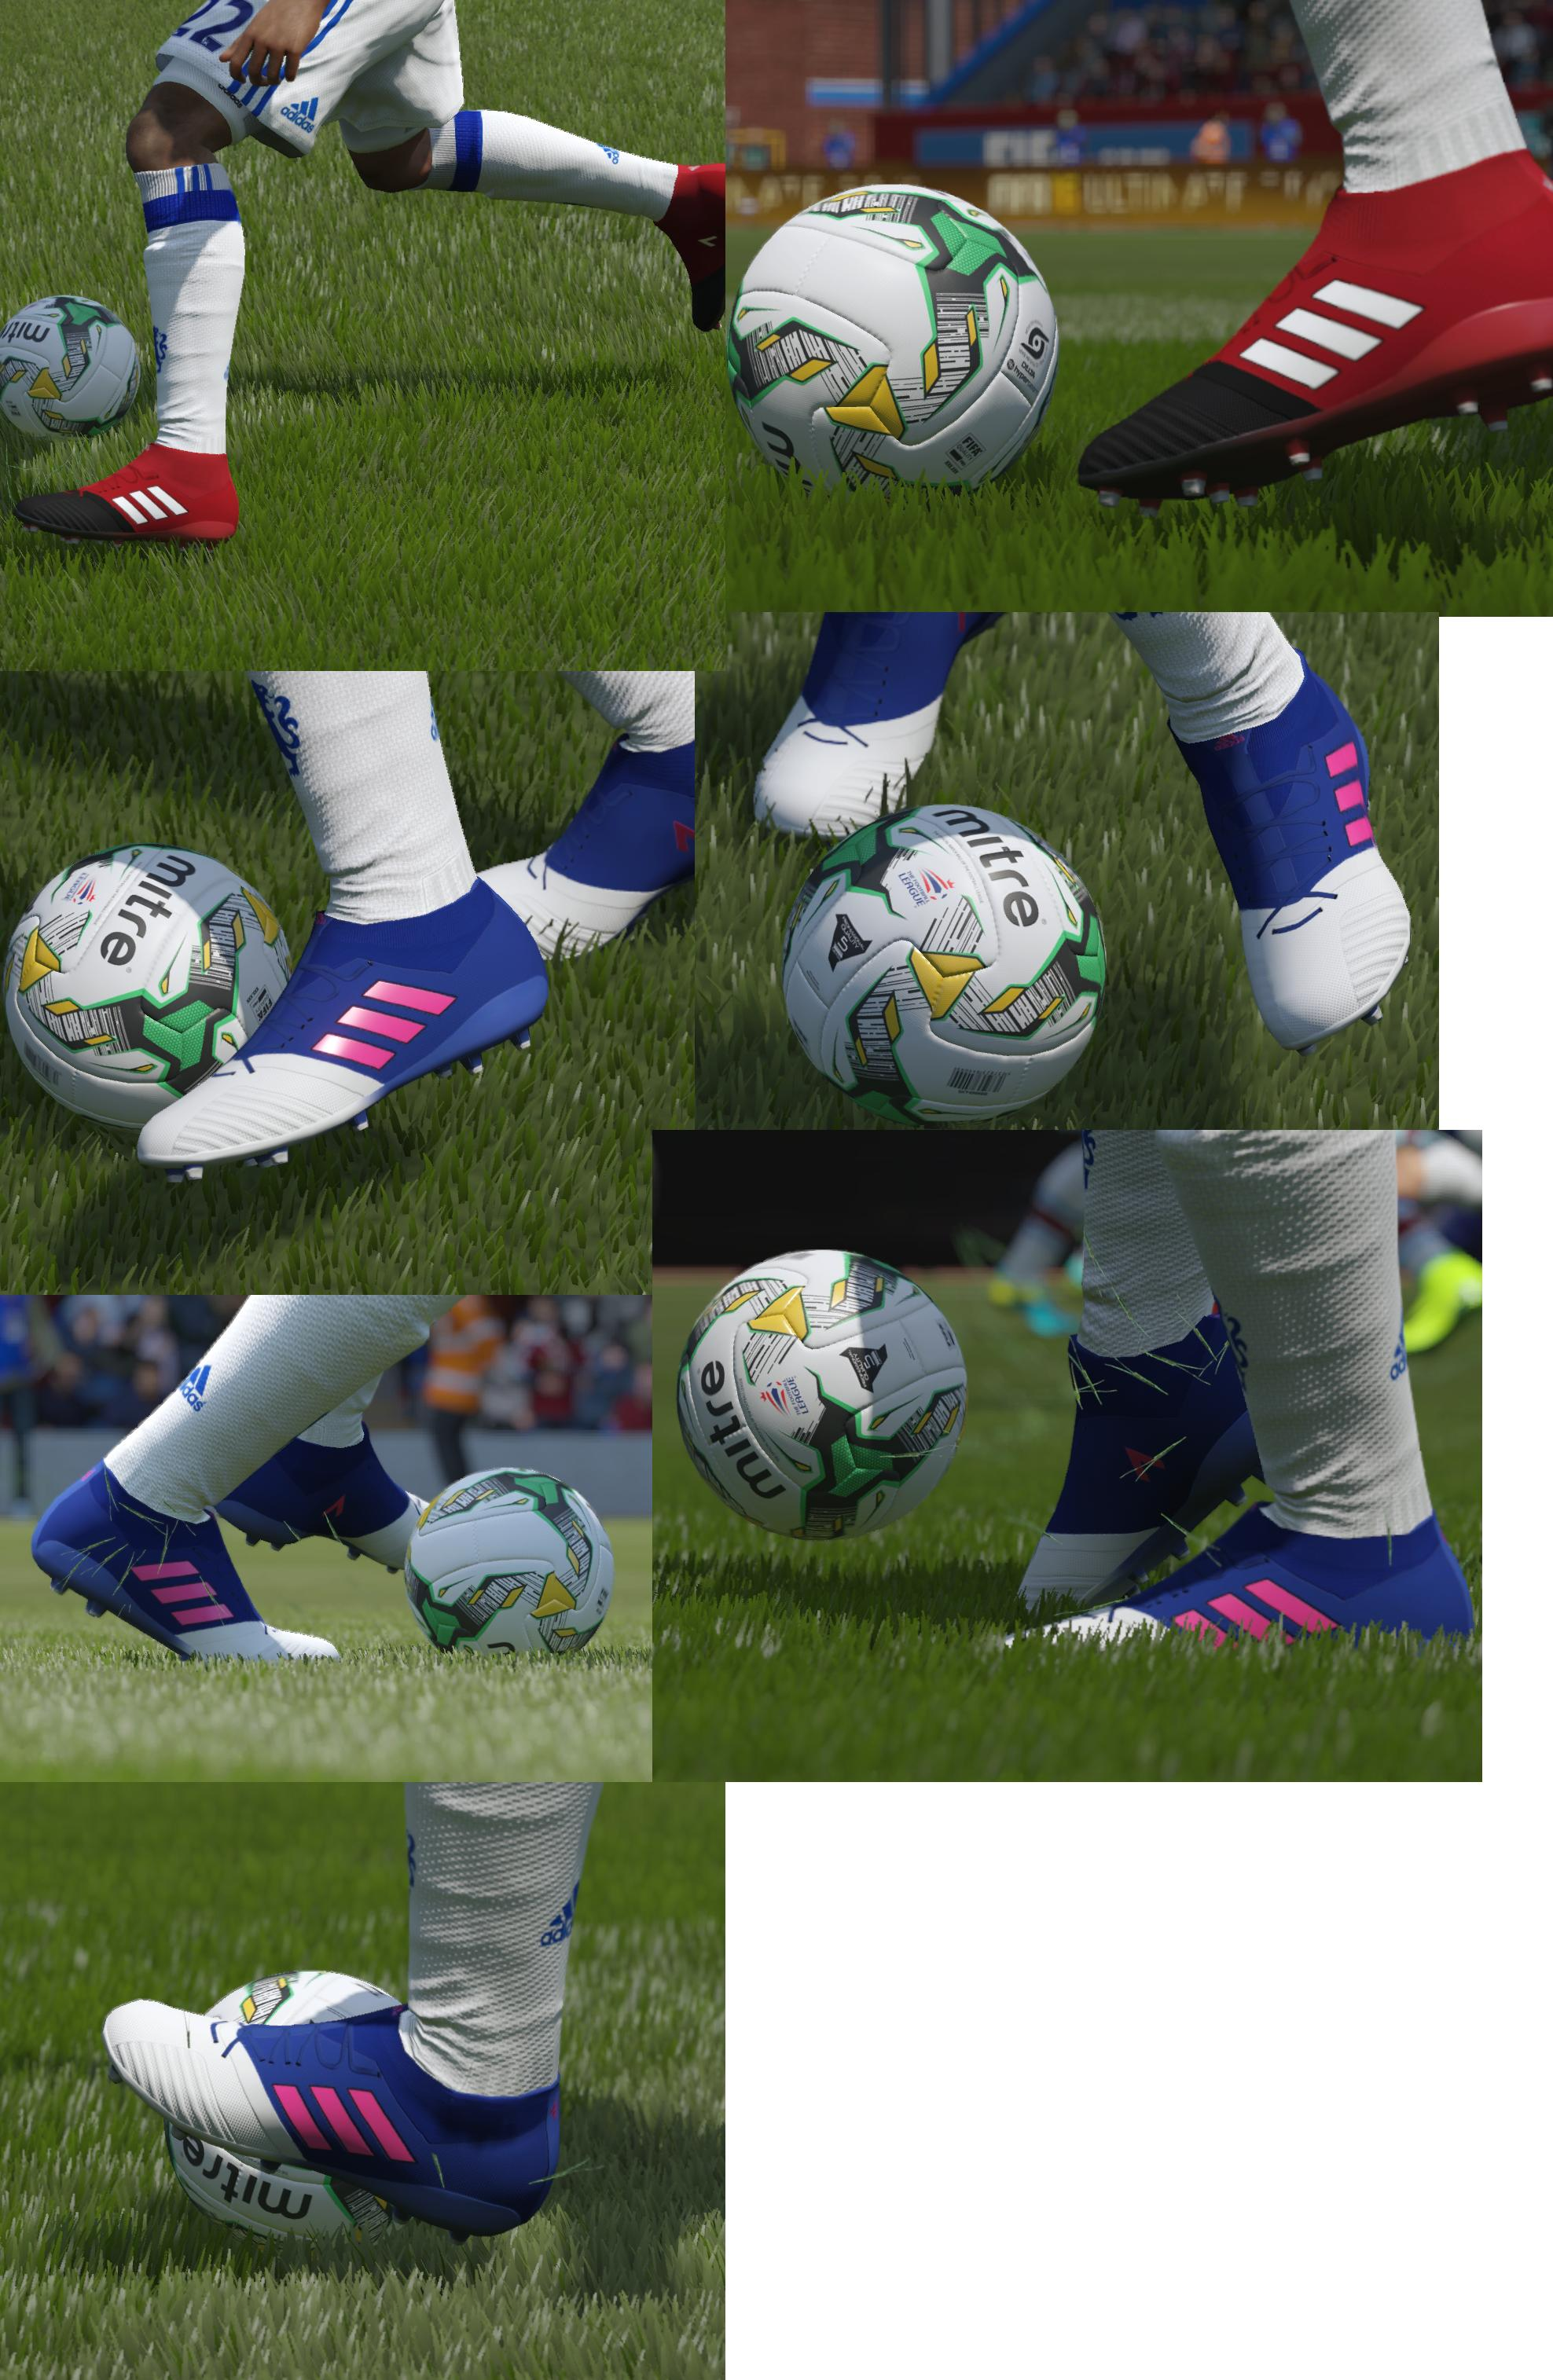 low priced c7950 14074 Adidas Ace 17 Primeknit boots